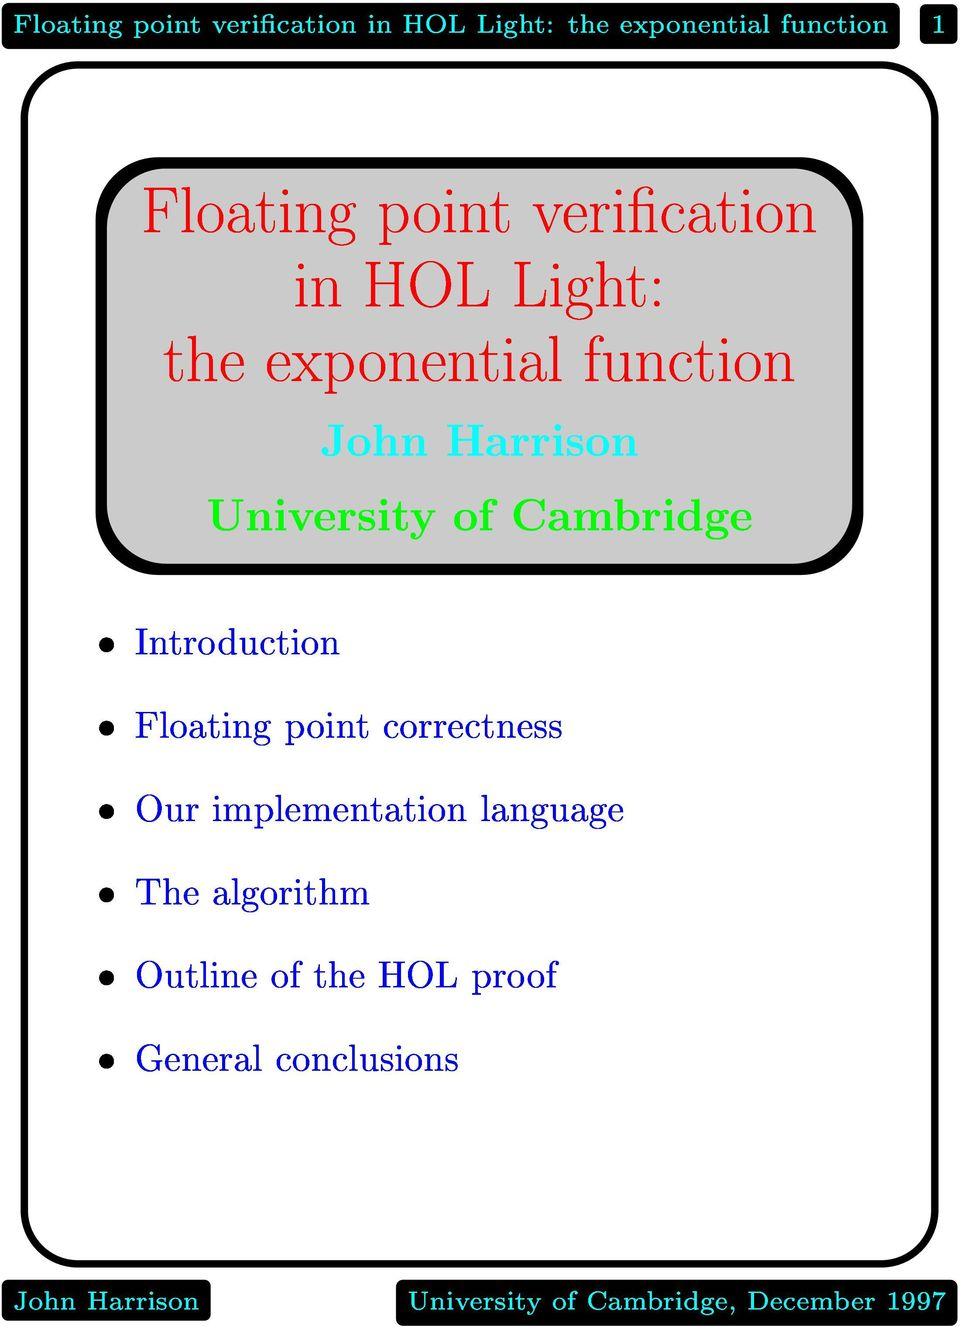 UniversityofCambridge JohnHarrison Introduction Floatingpointcorrectness